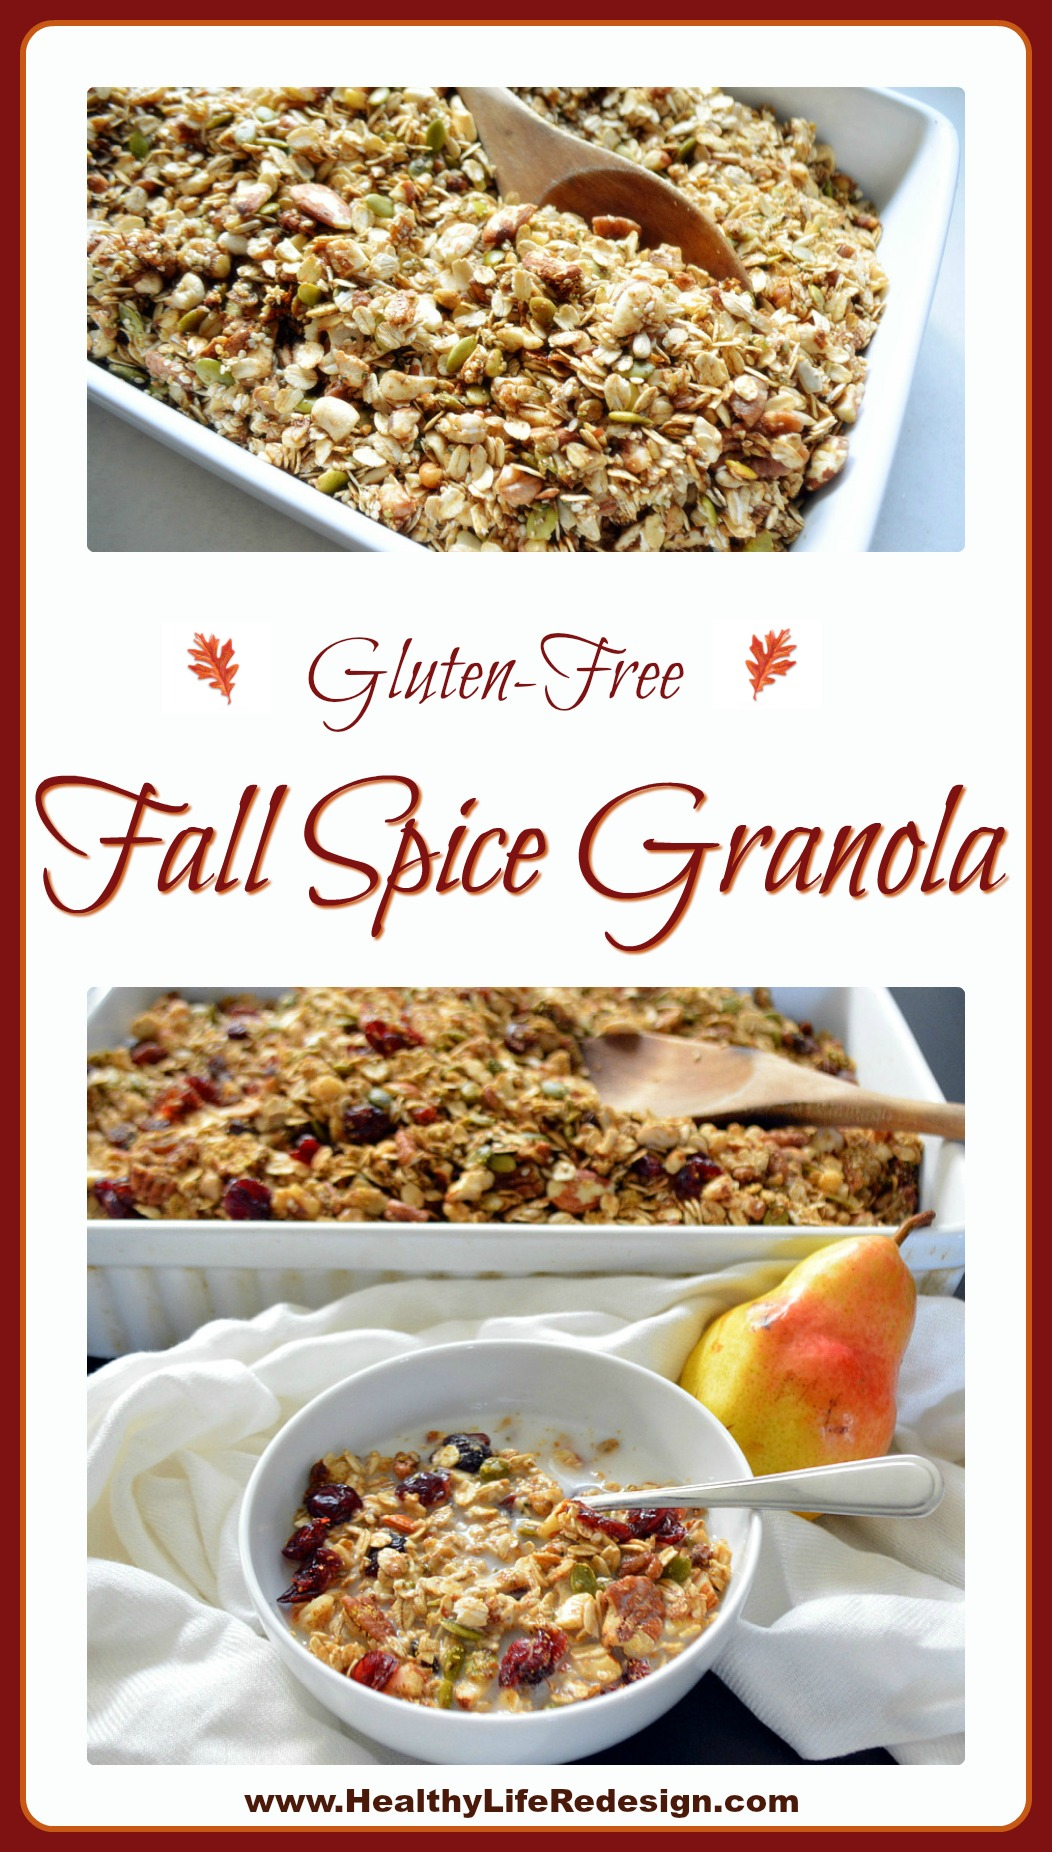 Gluten-free Fall Spice Granola - Naturally sweetened and infused with flavours of cinnamon, nutmeg, cardamom and ginger.